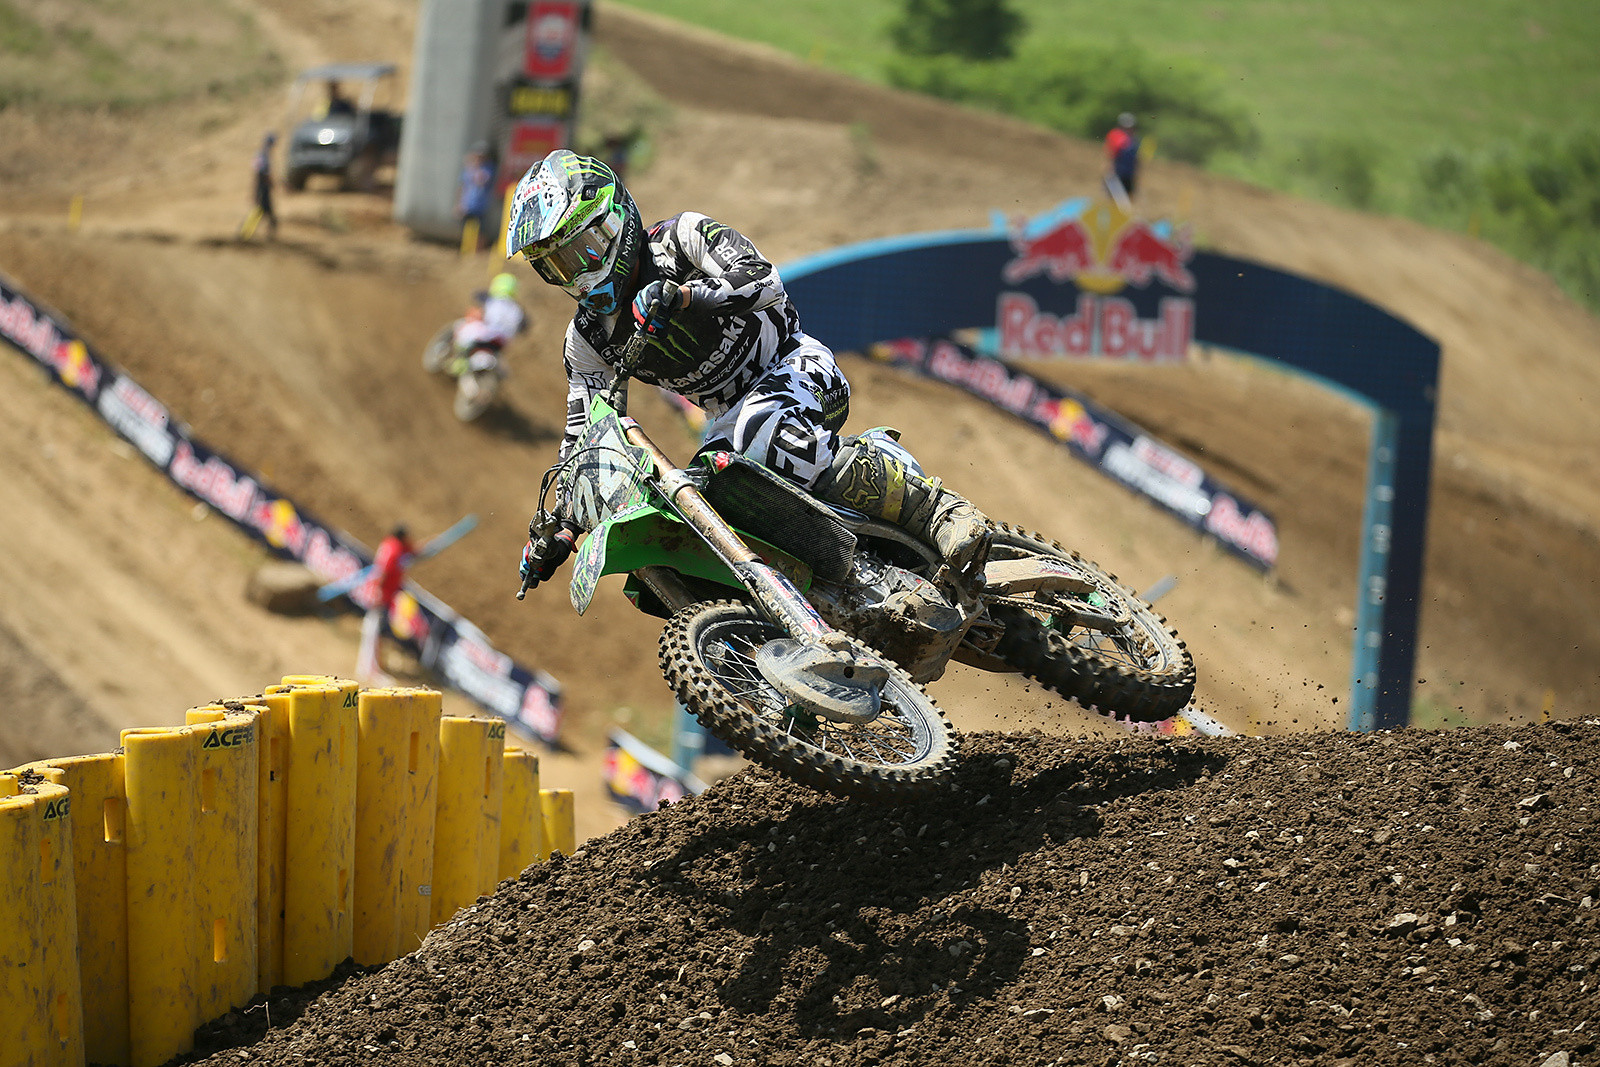 Austin Forkner scored a pair of sixth-place moto finishes.